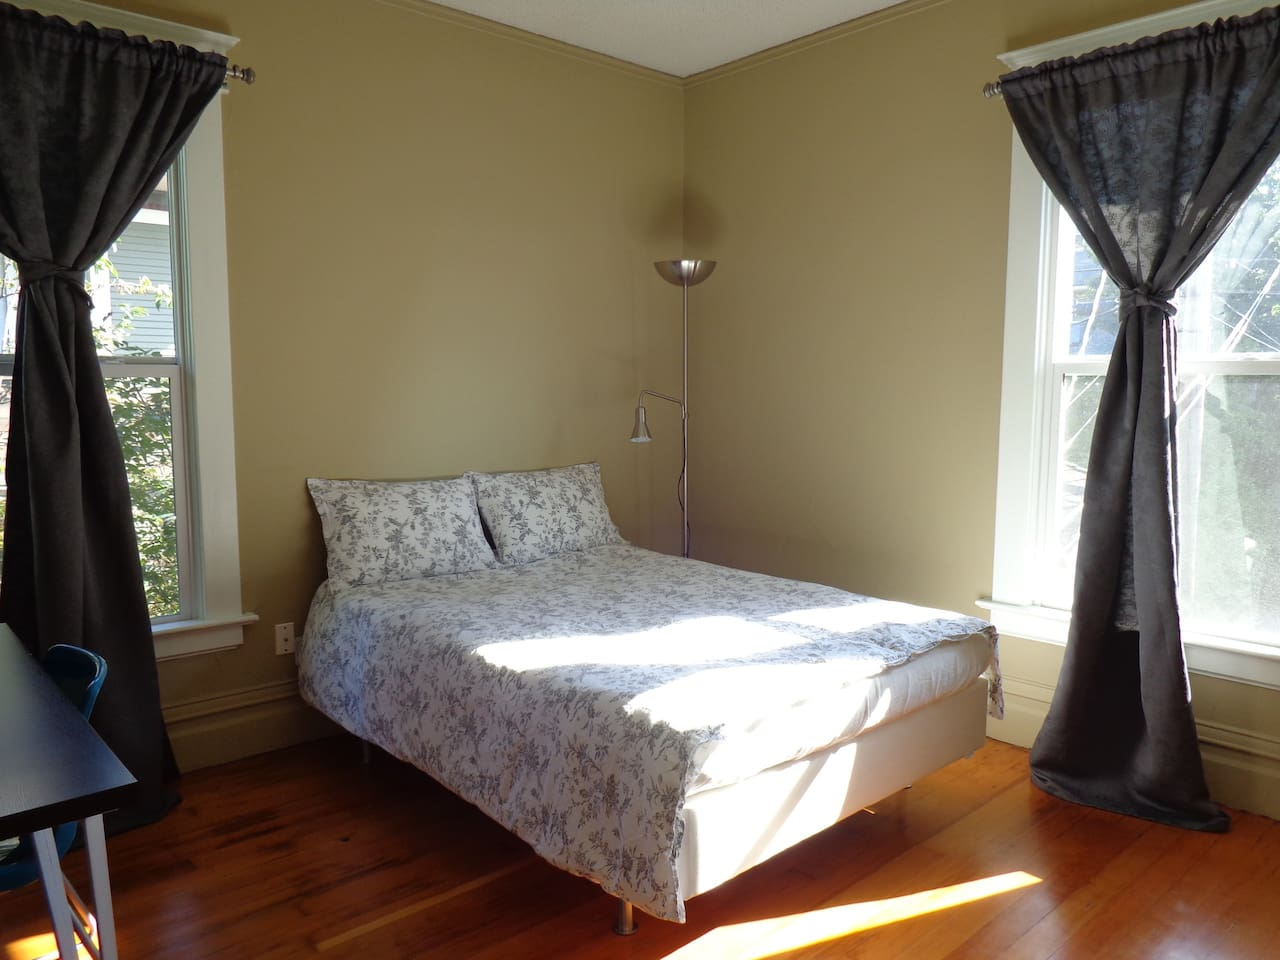 This room is $58 a night.  Photo was taken August 22, 2013.  Has a closet and desk.